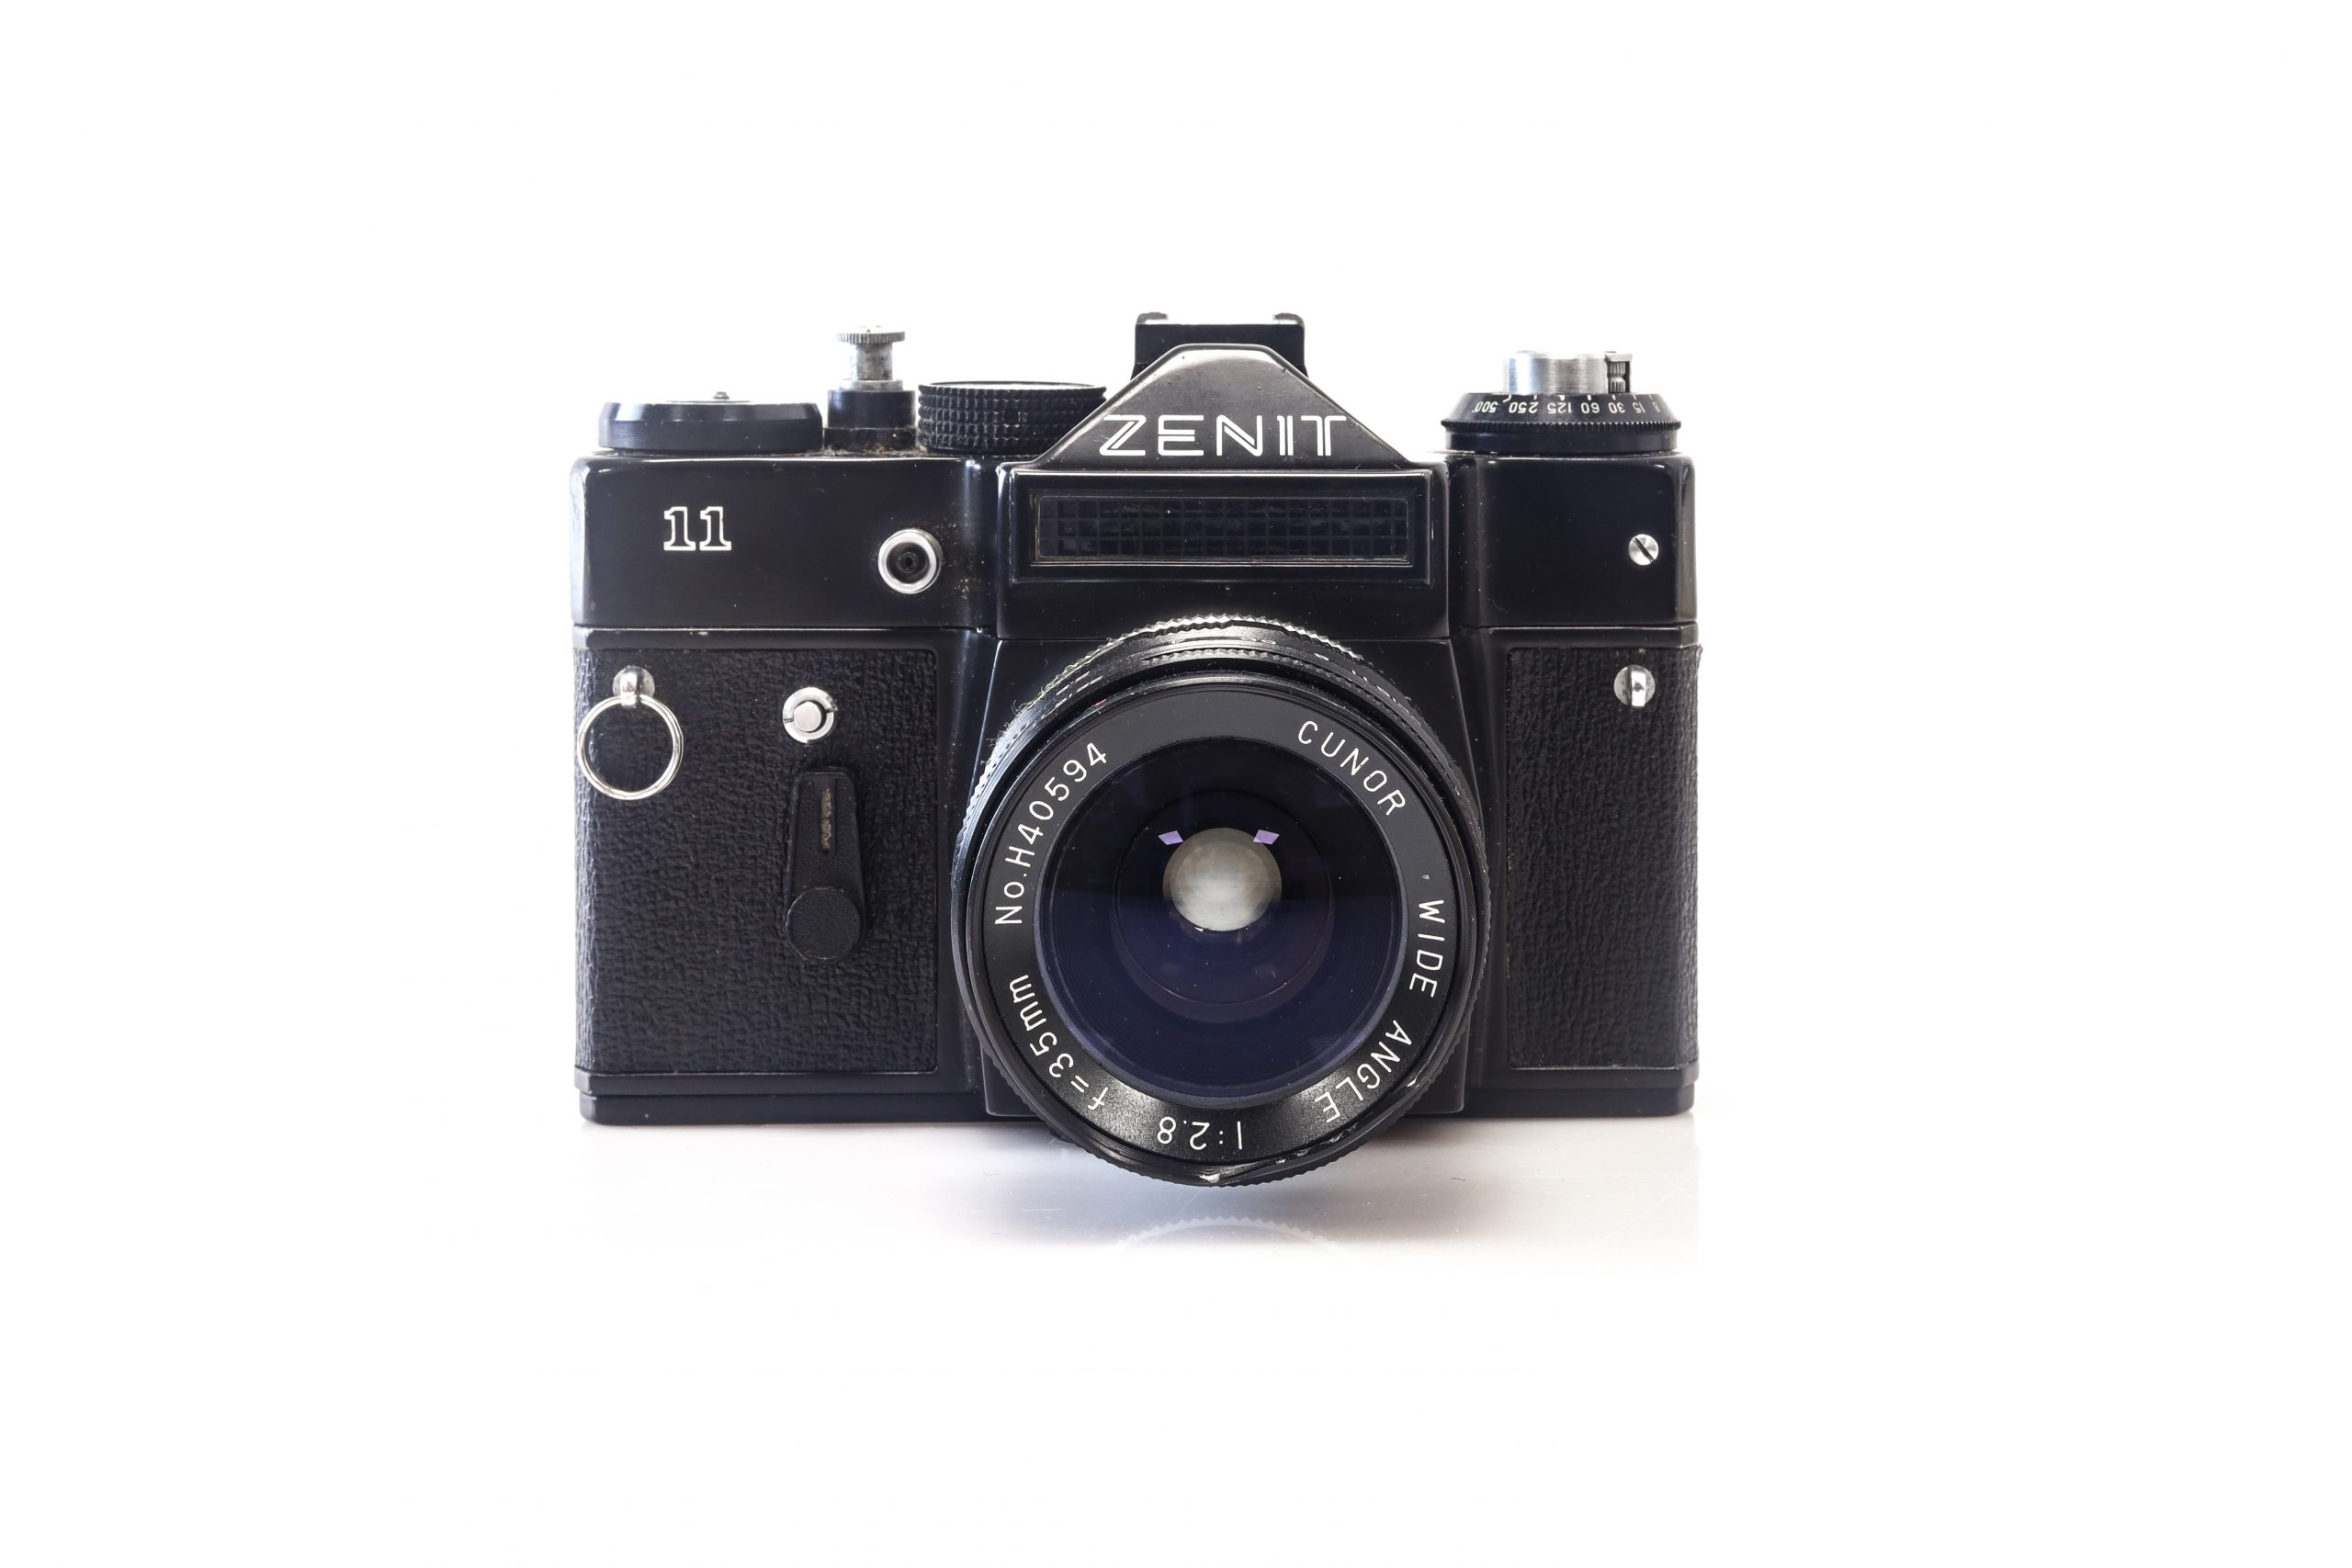 Stunning Zenit 11 35mm Film Camera + Cunor Wide Angle 35mm F2:8mm Lens